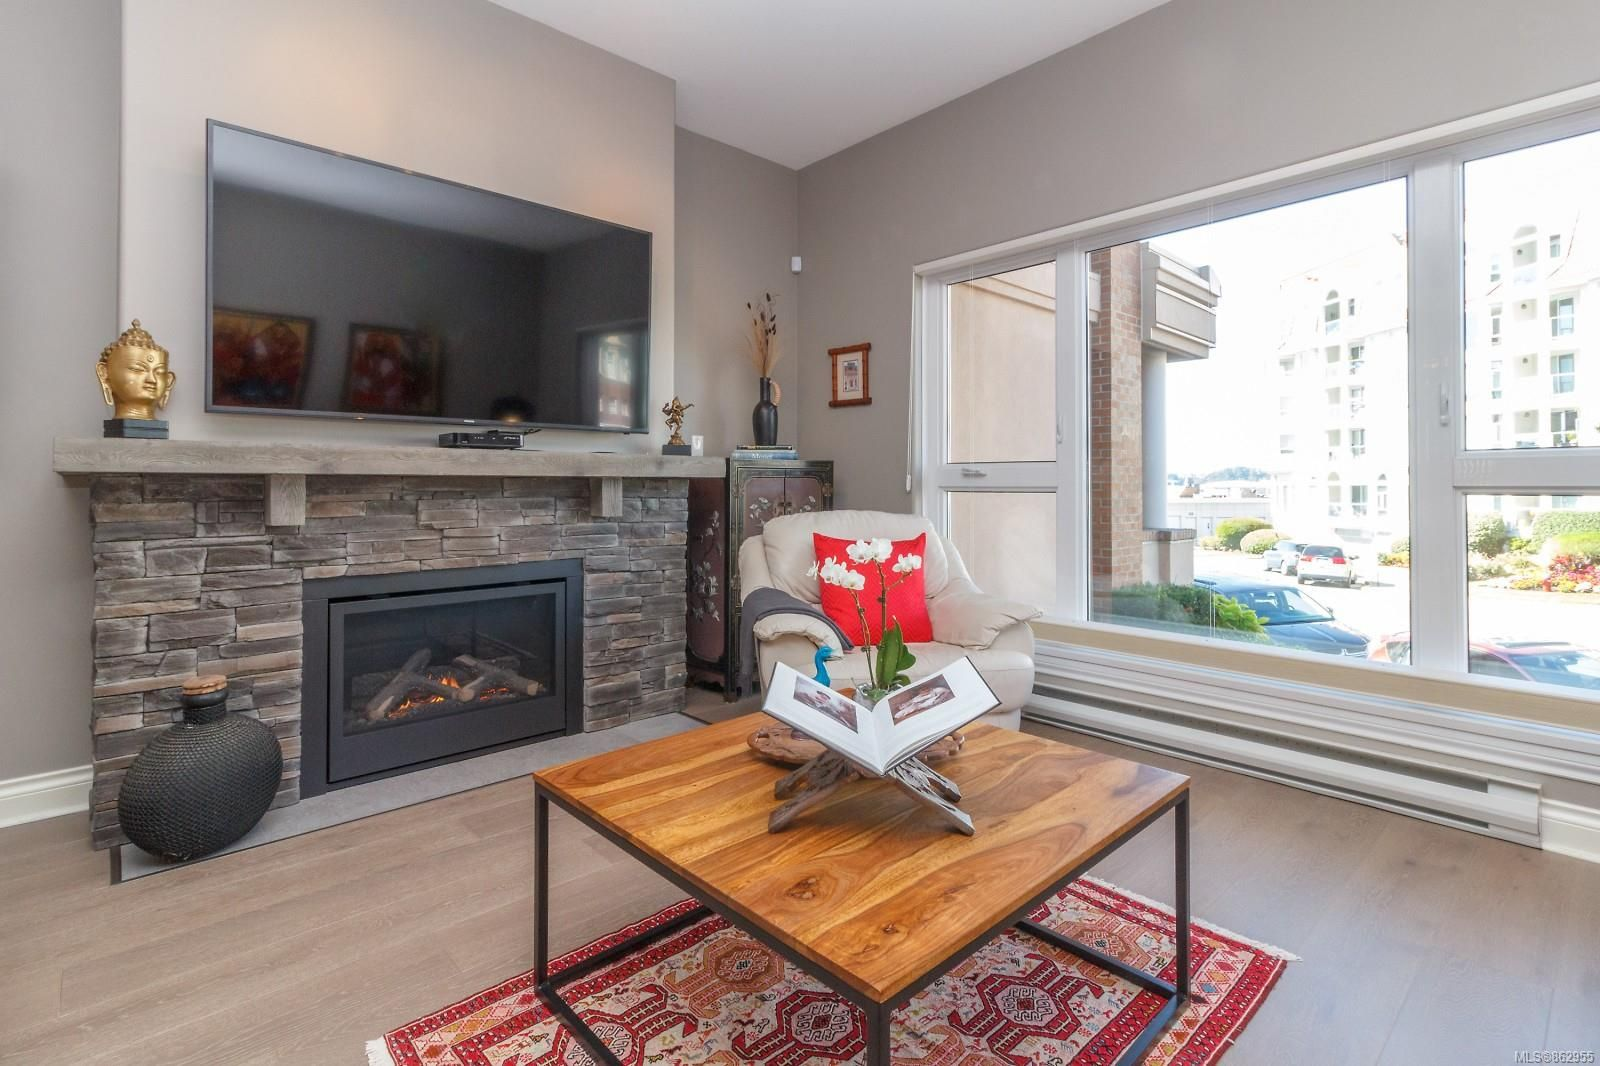 Main Photo: 124 75 Songhees Rd in Victoria: VW Songhees Row/Townhouse for sale (Victoria West)  : MLS®# 862955